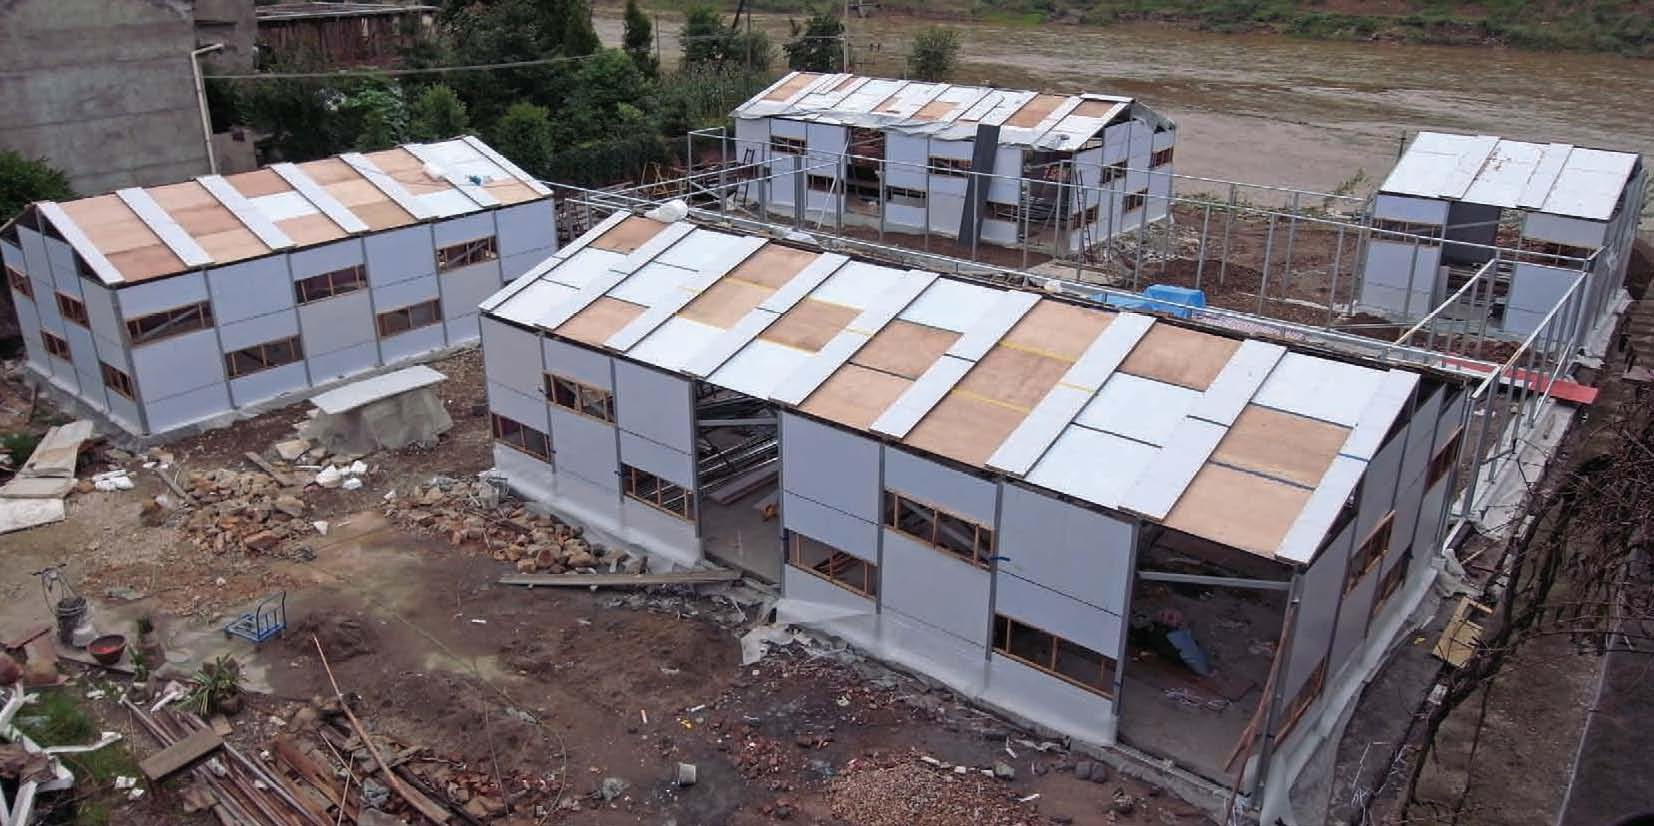 Construction process - with the guidance of CUHK researchers, the 450-square metre New Bud Primary School was built within two weeks